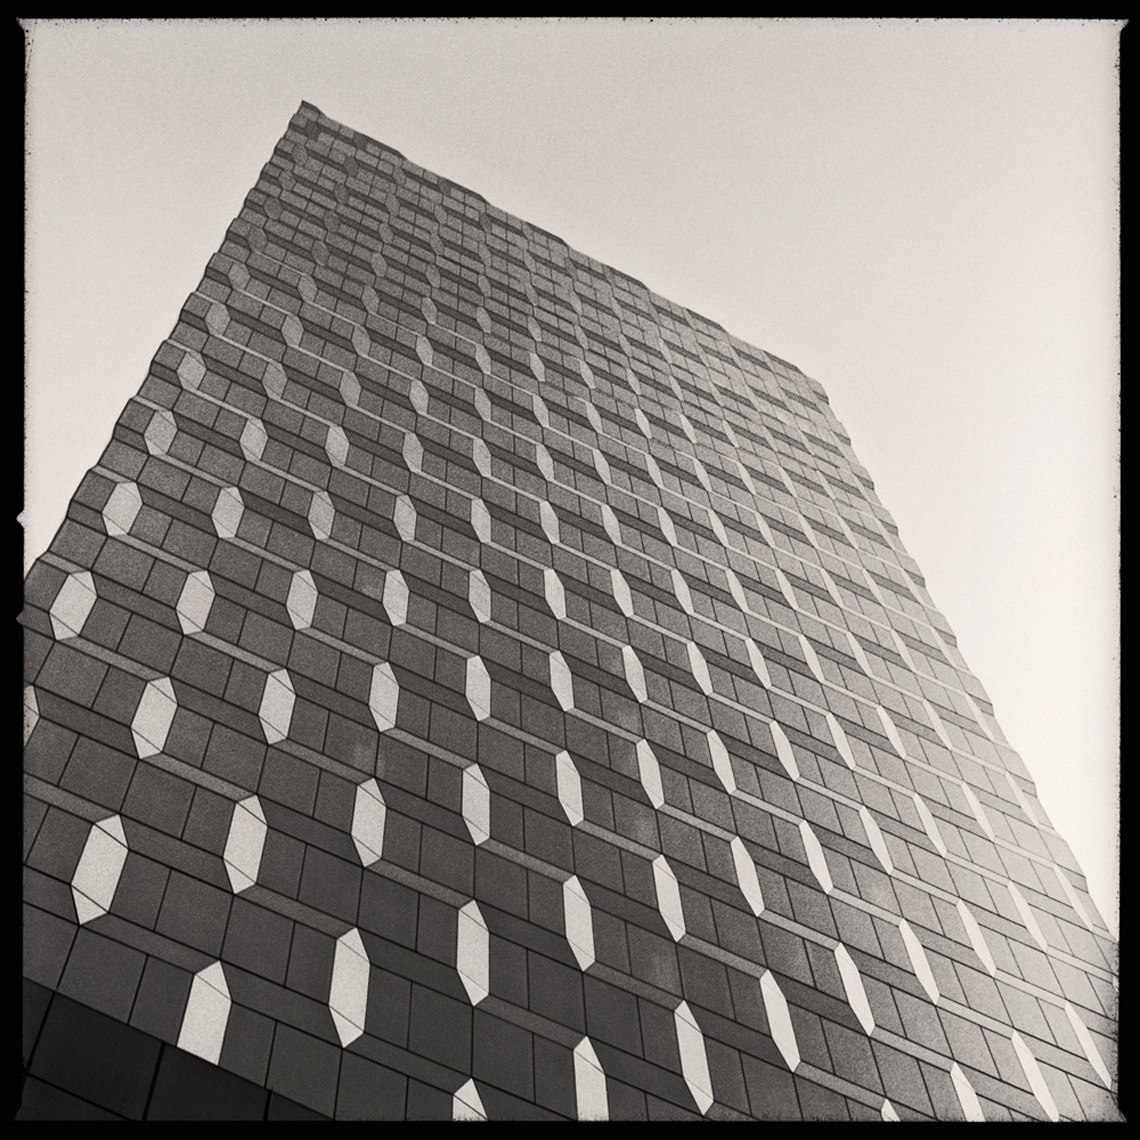 Sean Perry Photographs • International Gem Tower, from the series Monolith